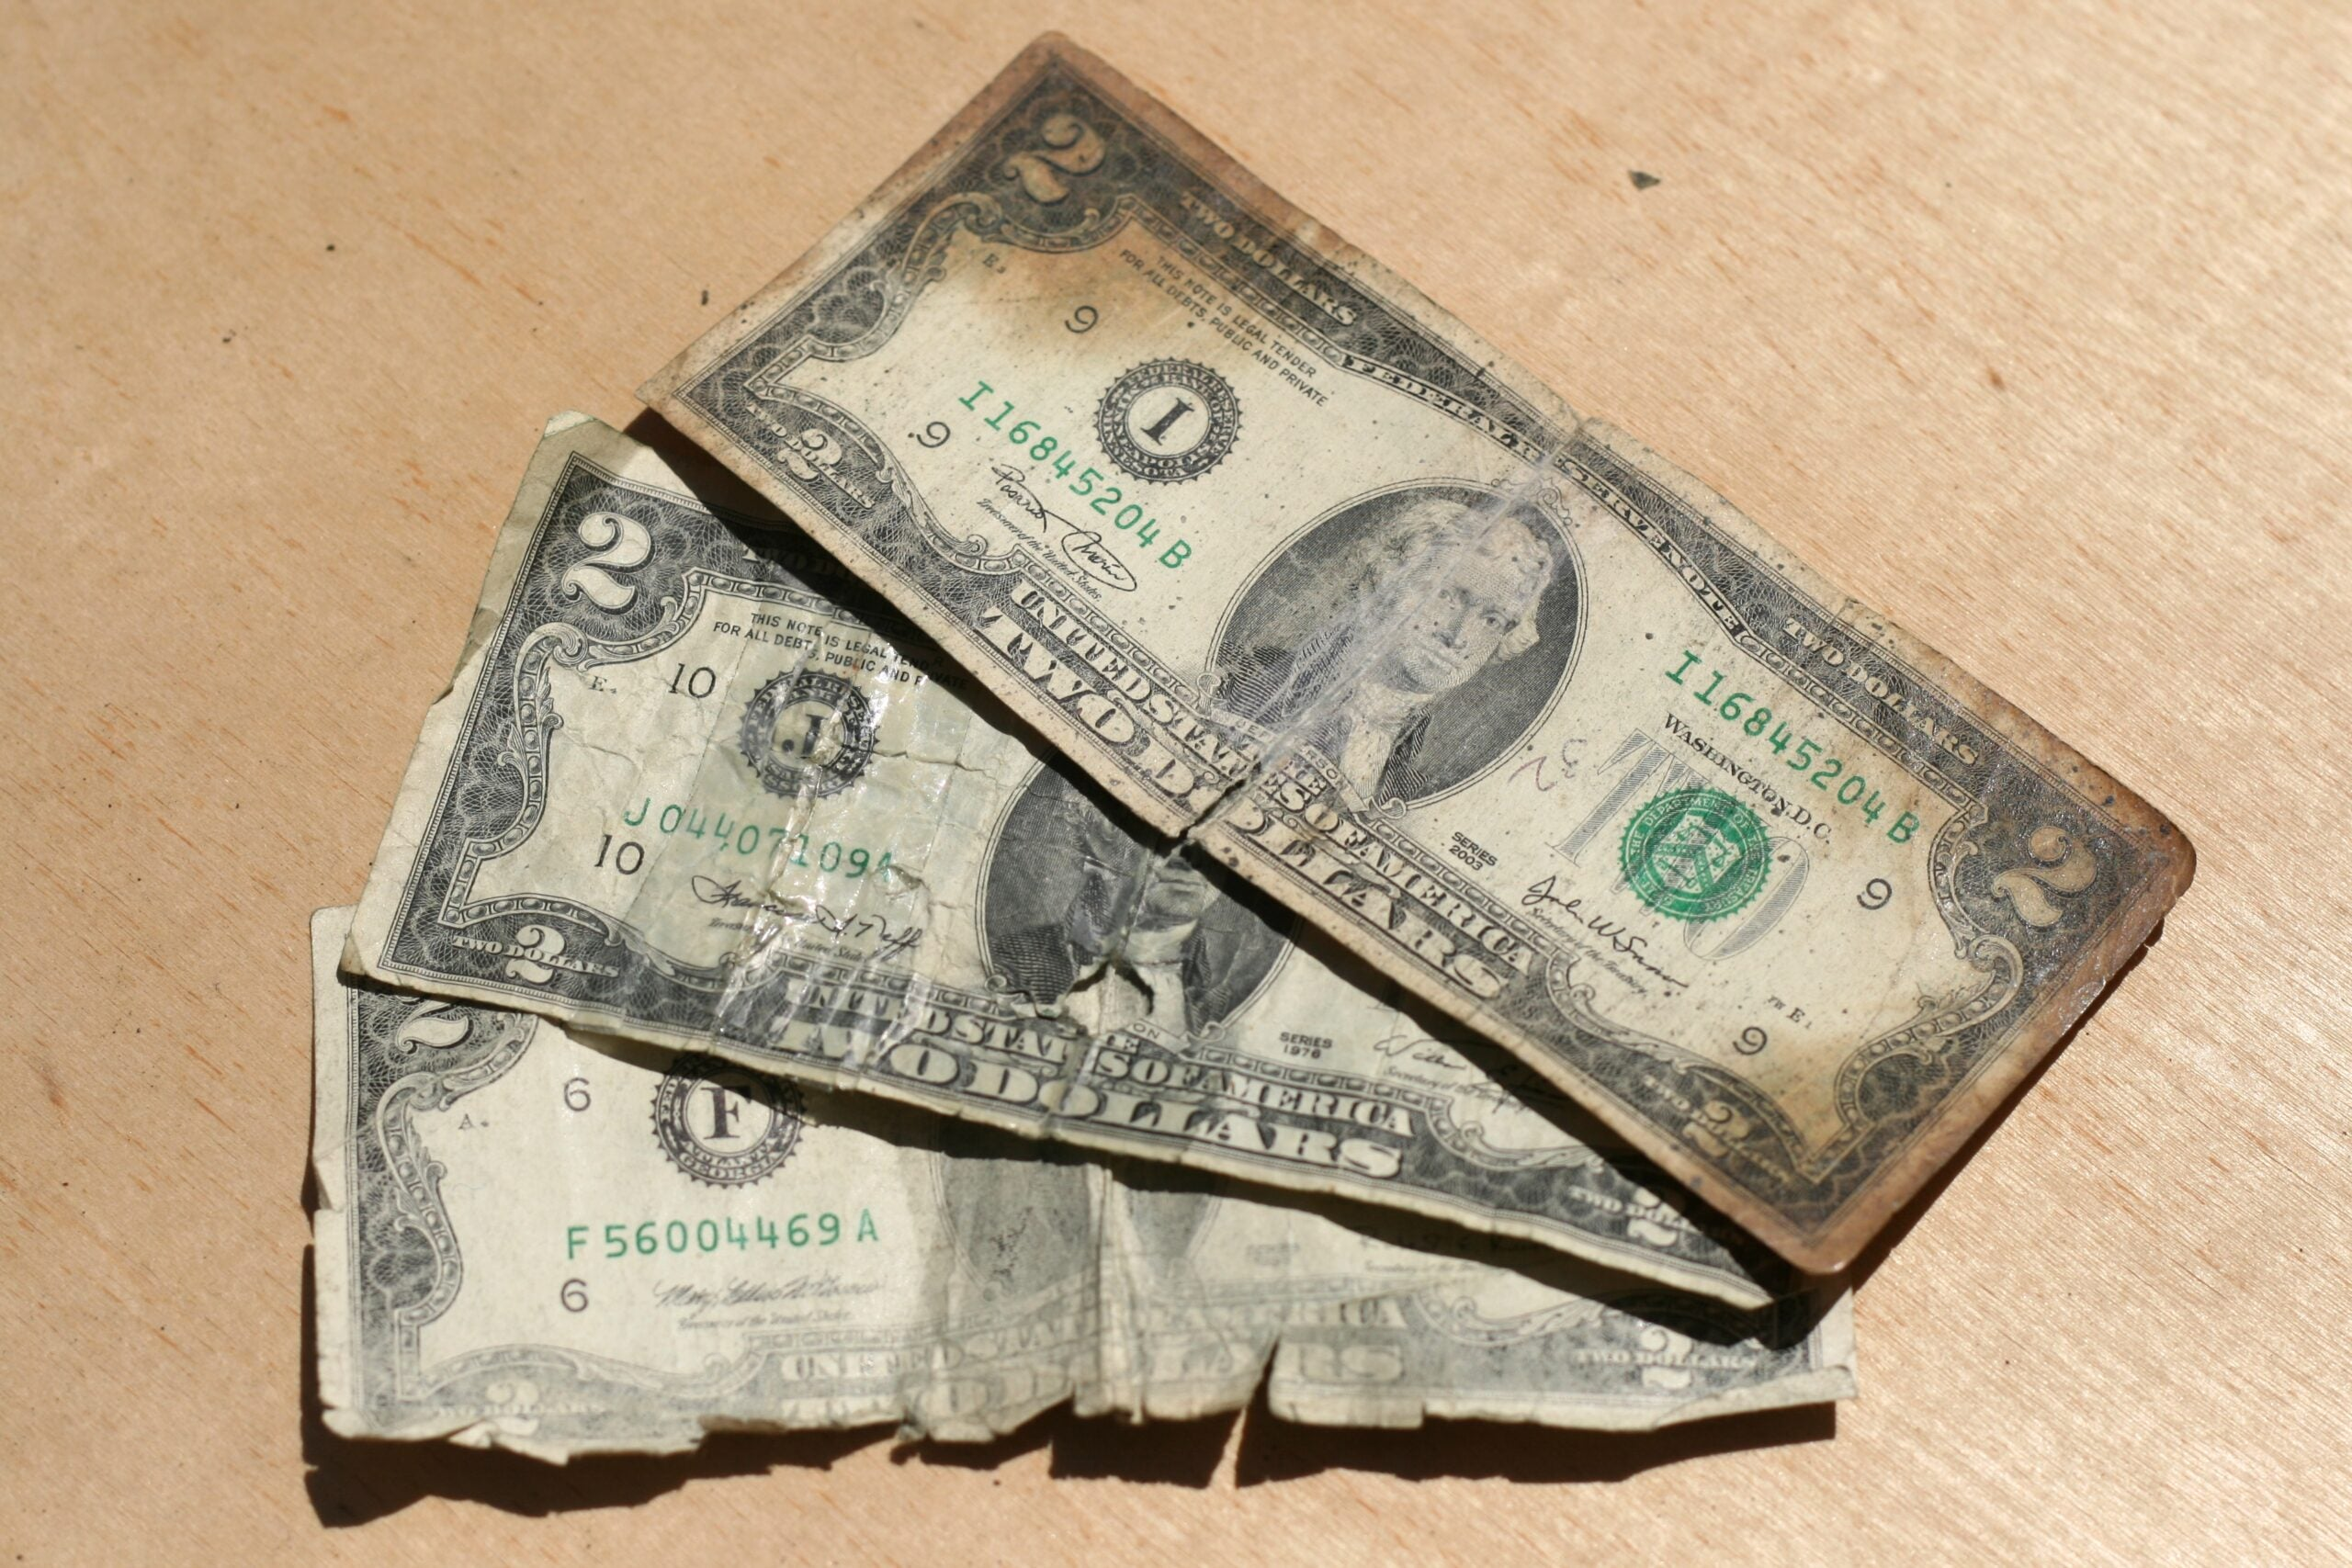 Washing Dollar Bills With Carbon Dioxide Could Save Billions